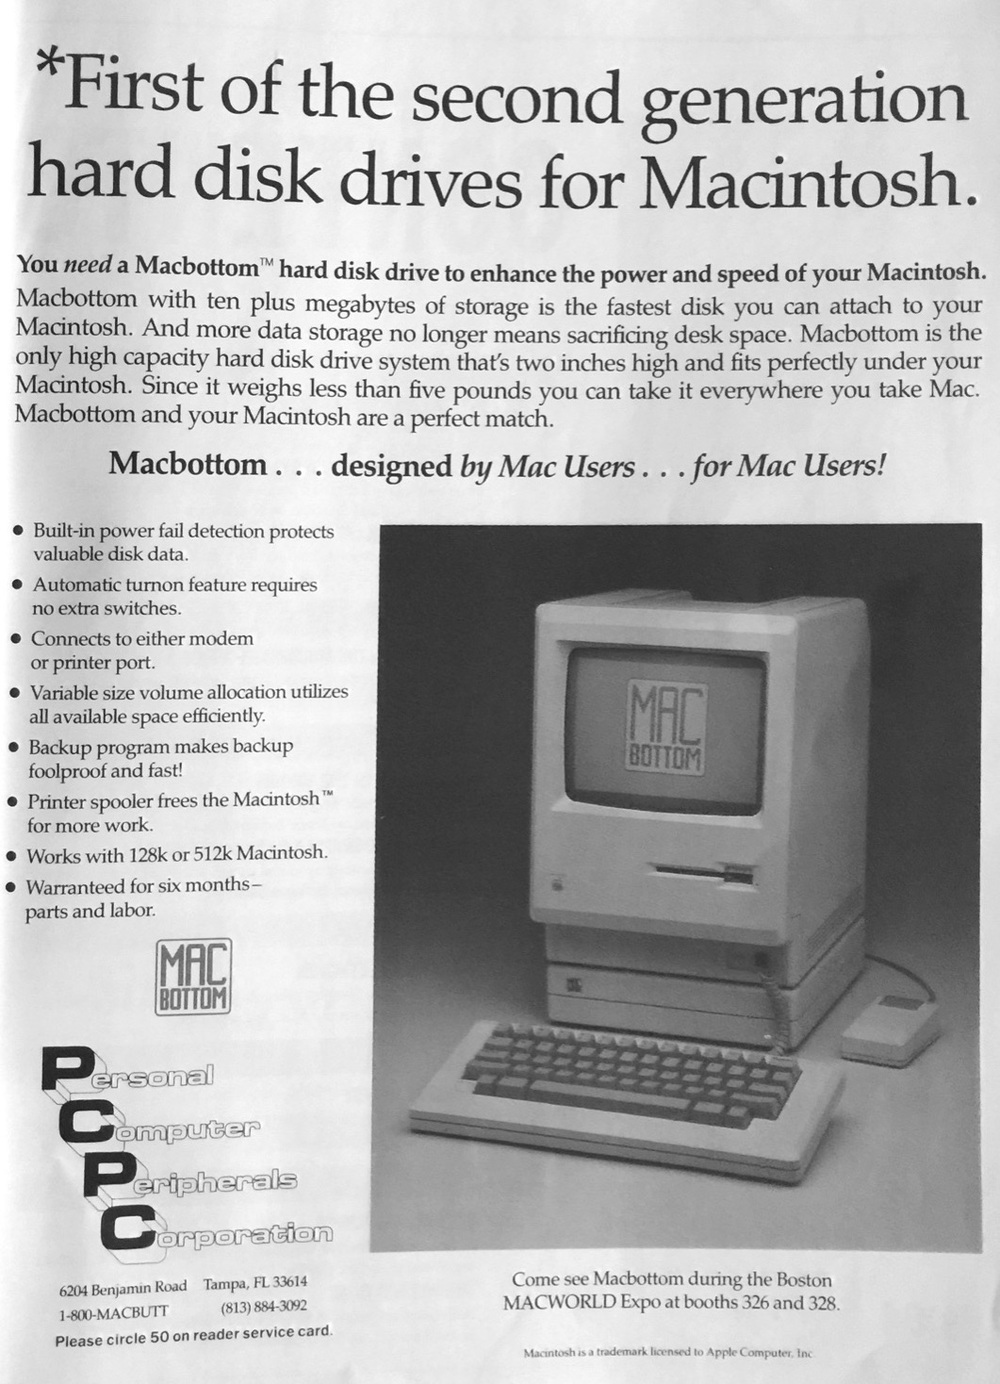 CLICK TO EXPAND PICTURE. FROM OCTOBER 1985 ISSUE OF MACUSER MAGAZINE